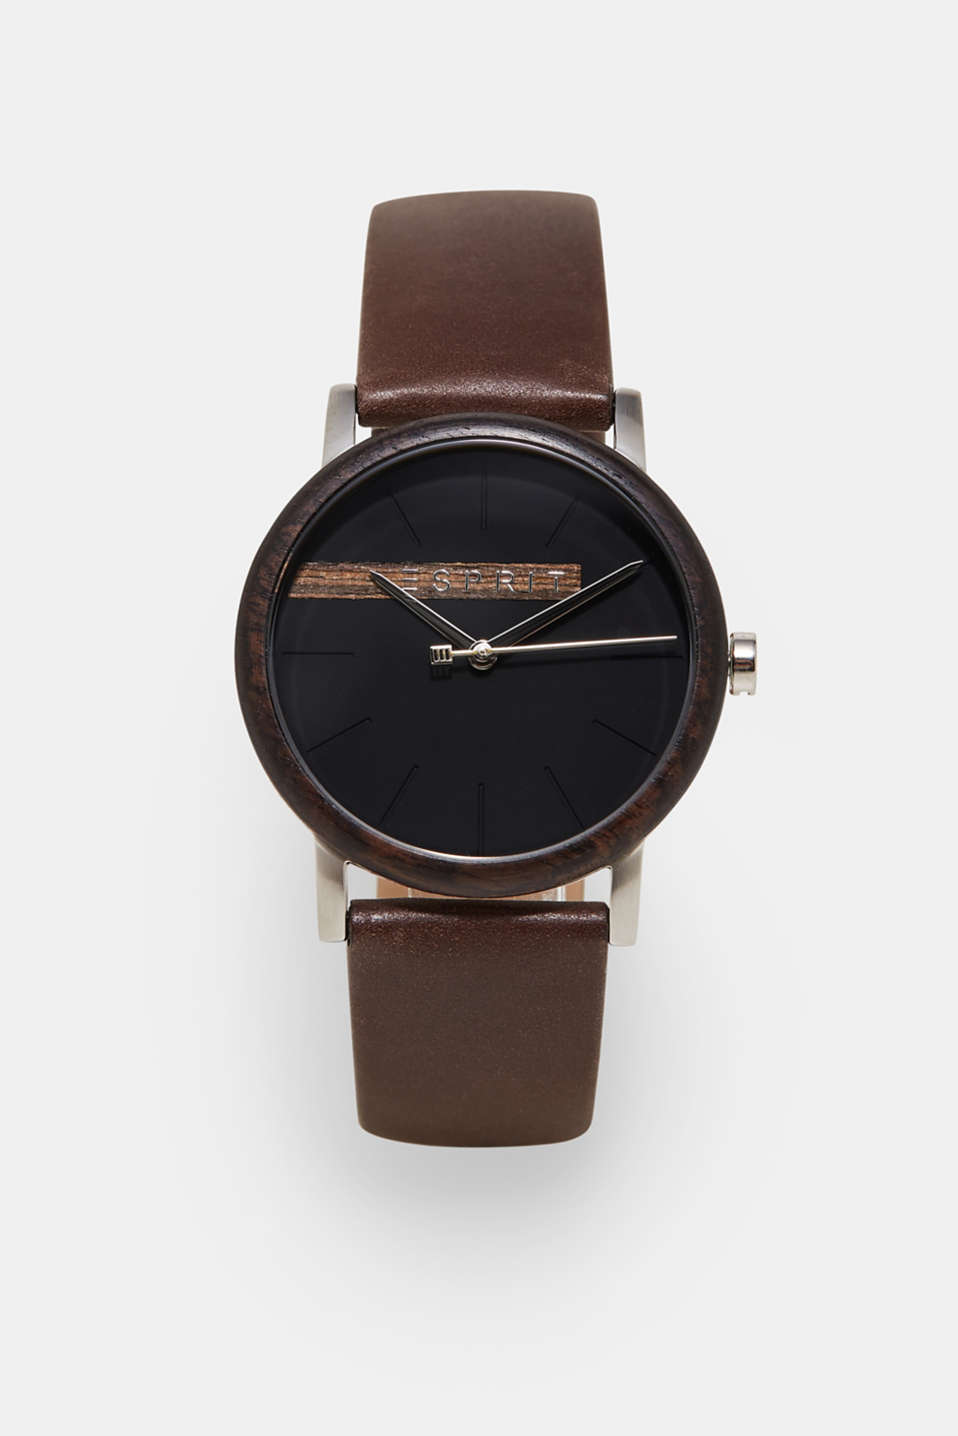 Esprit - Watch with wooden bezel for men